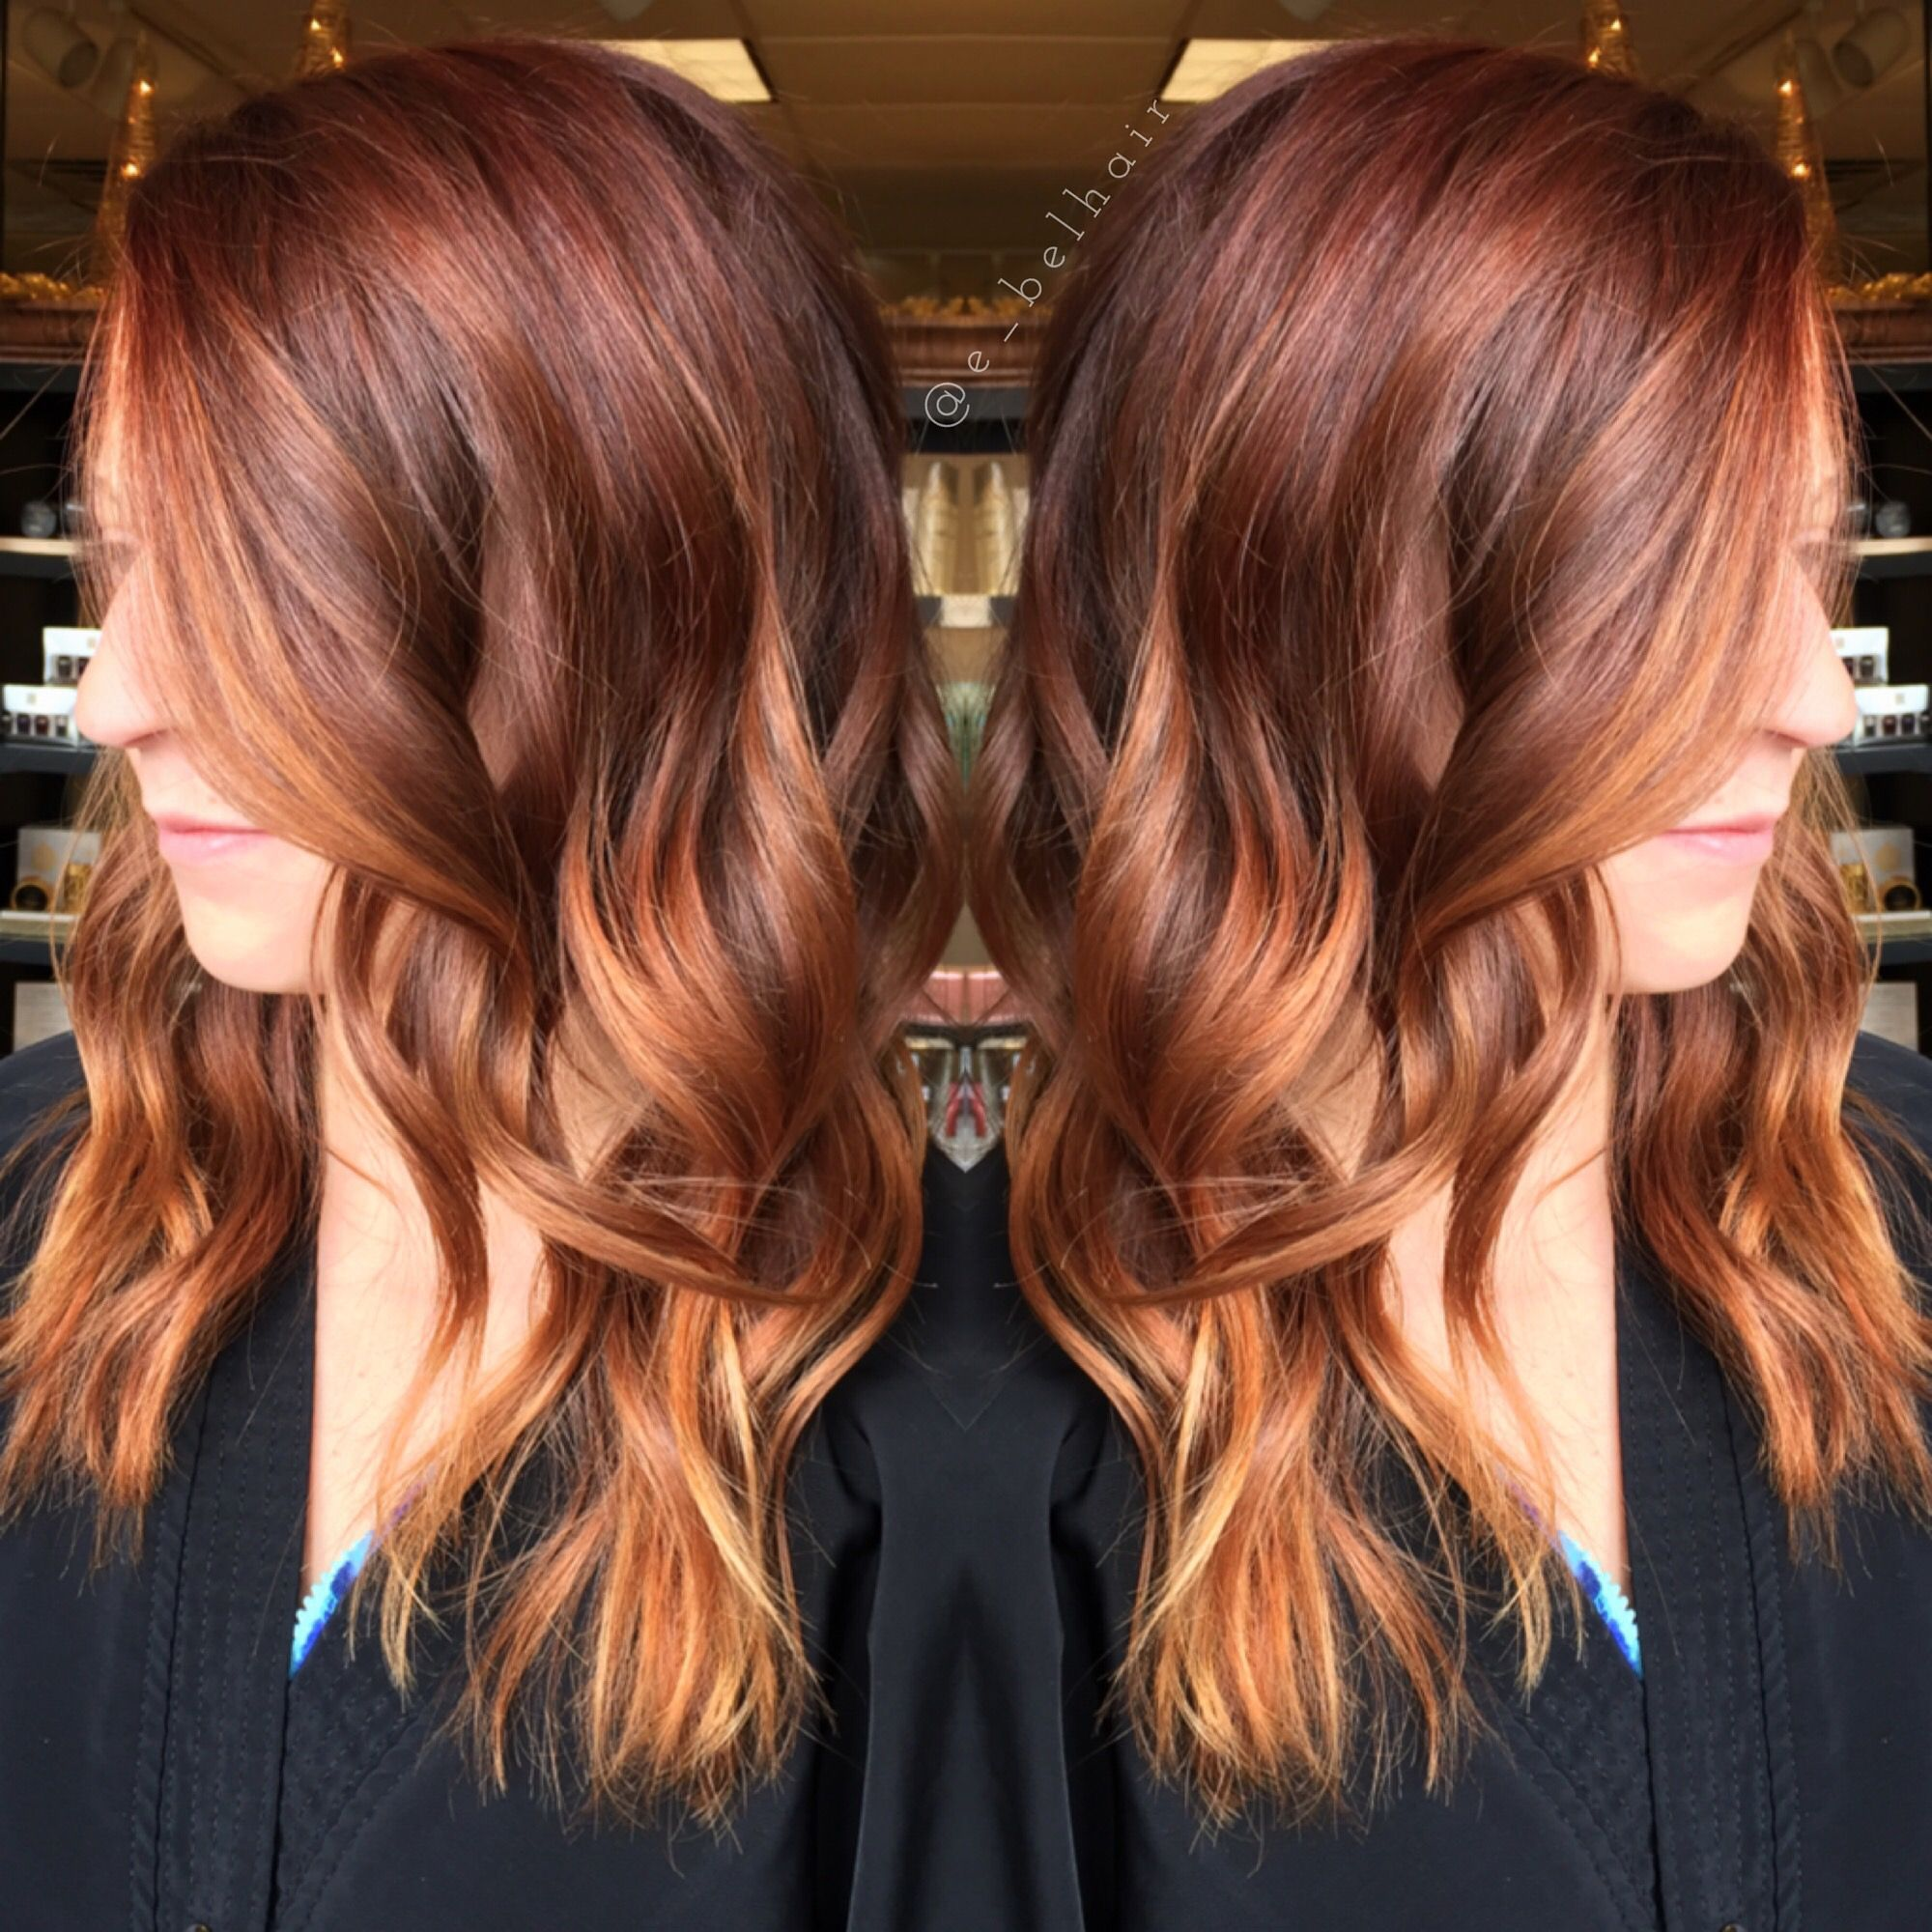 Red hair Copper toned balayage